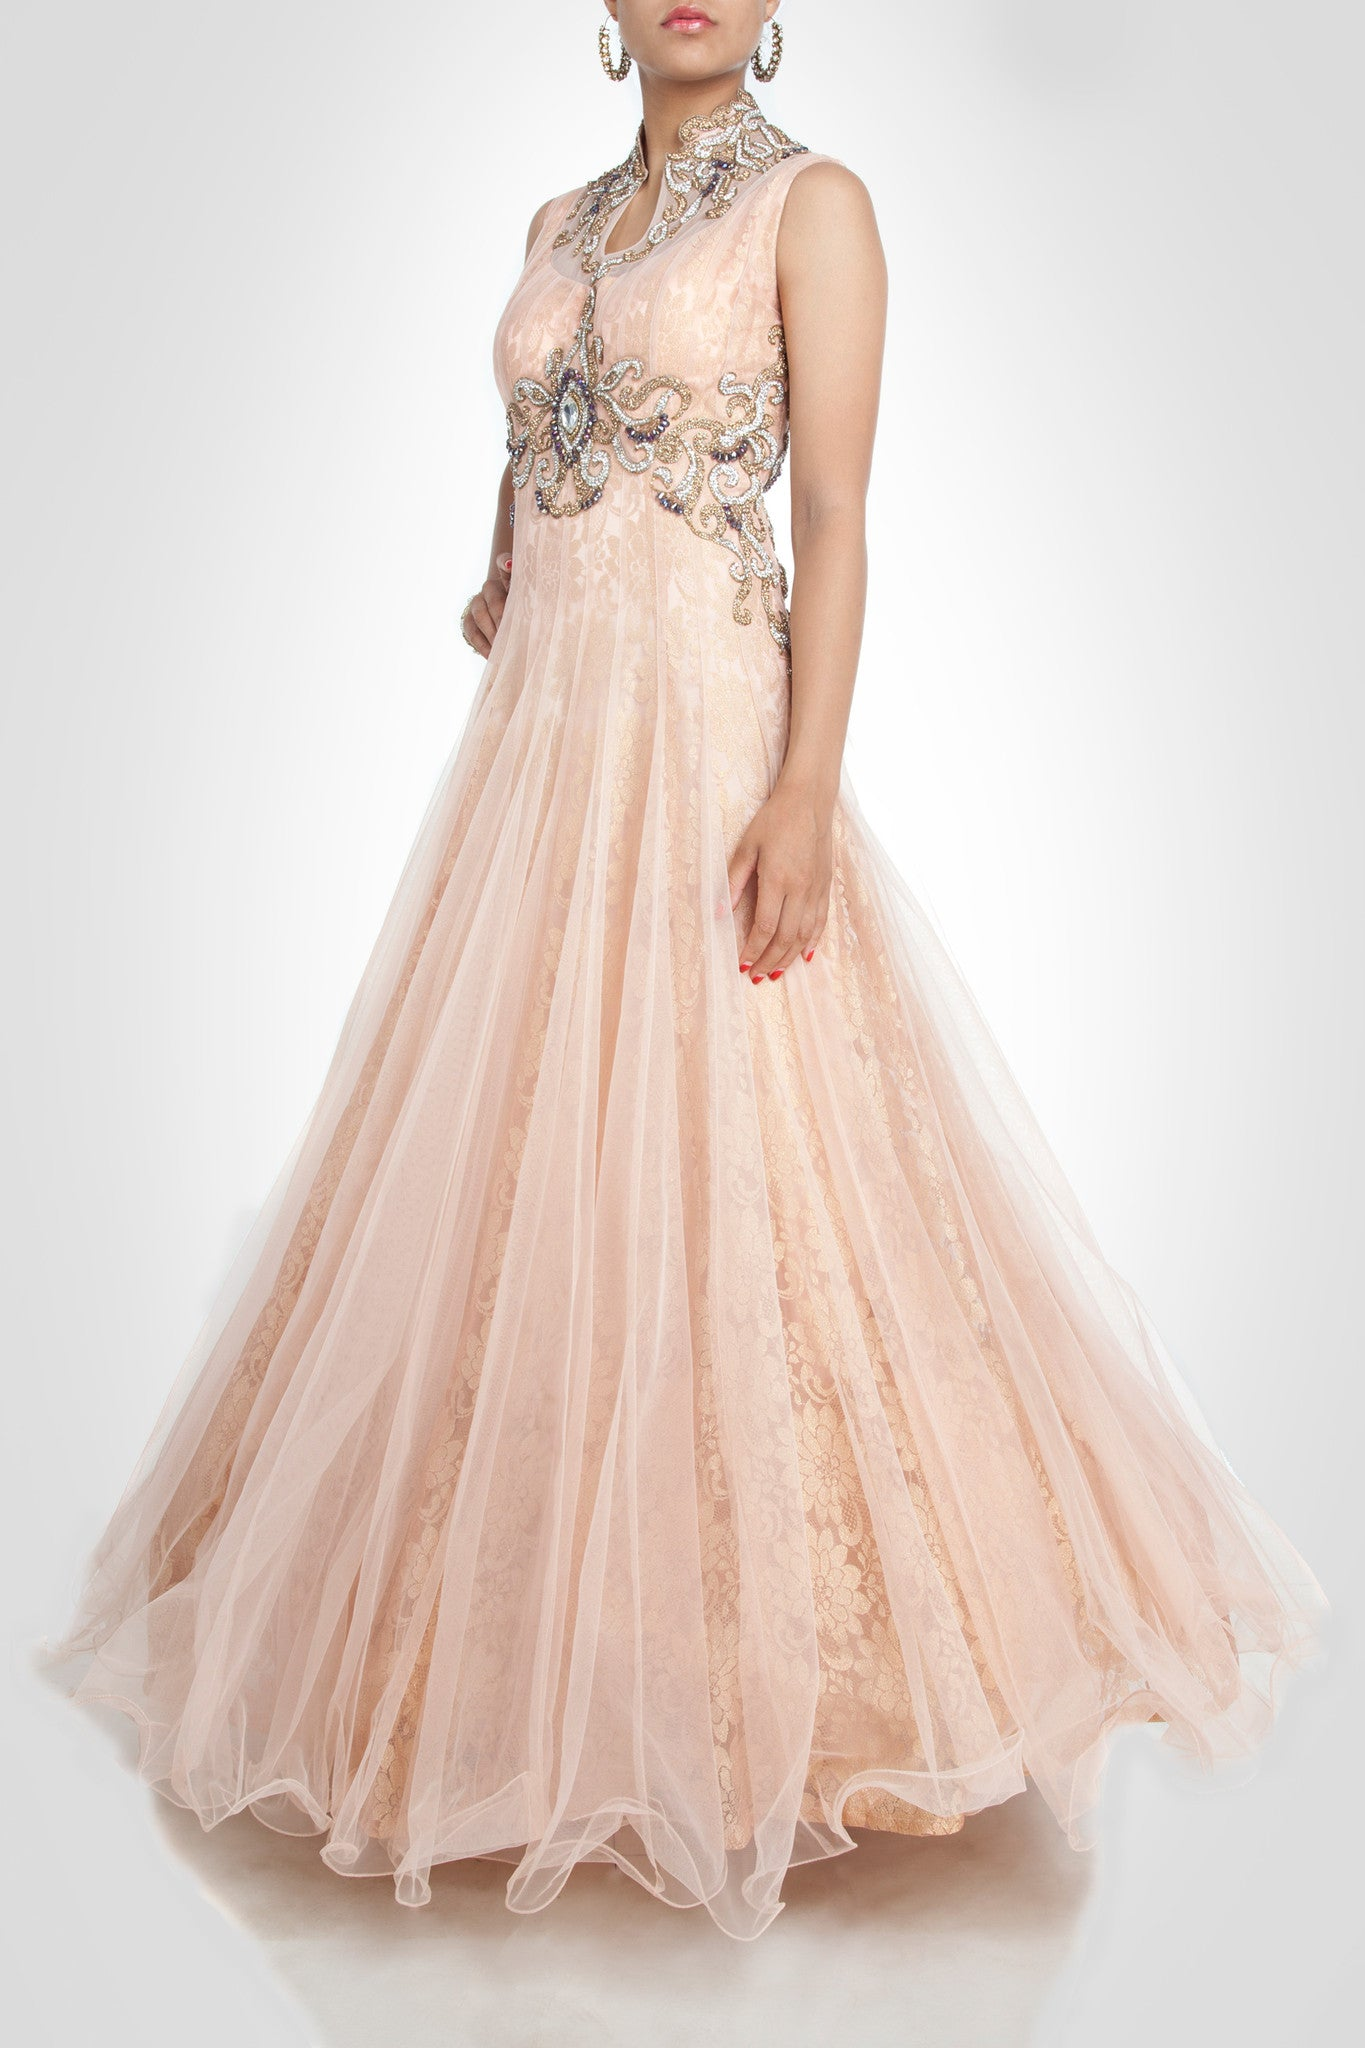 Peach color high-neck gown